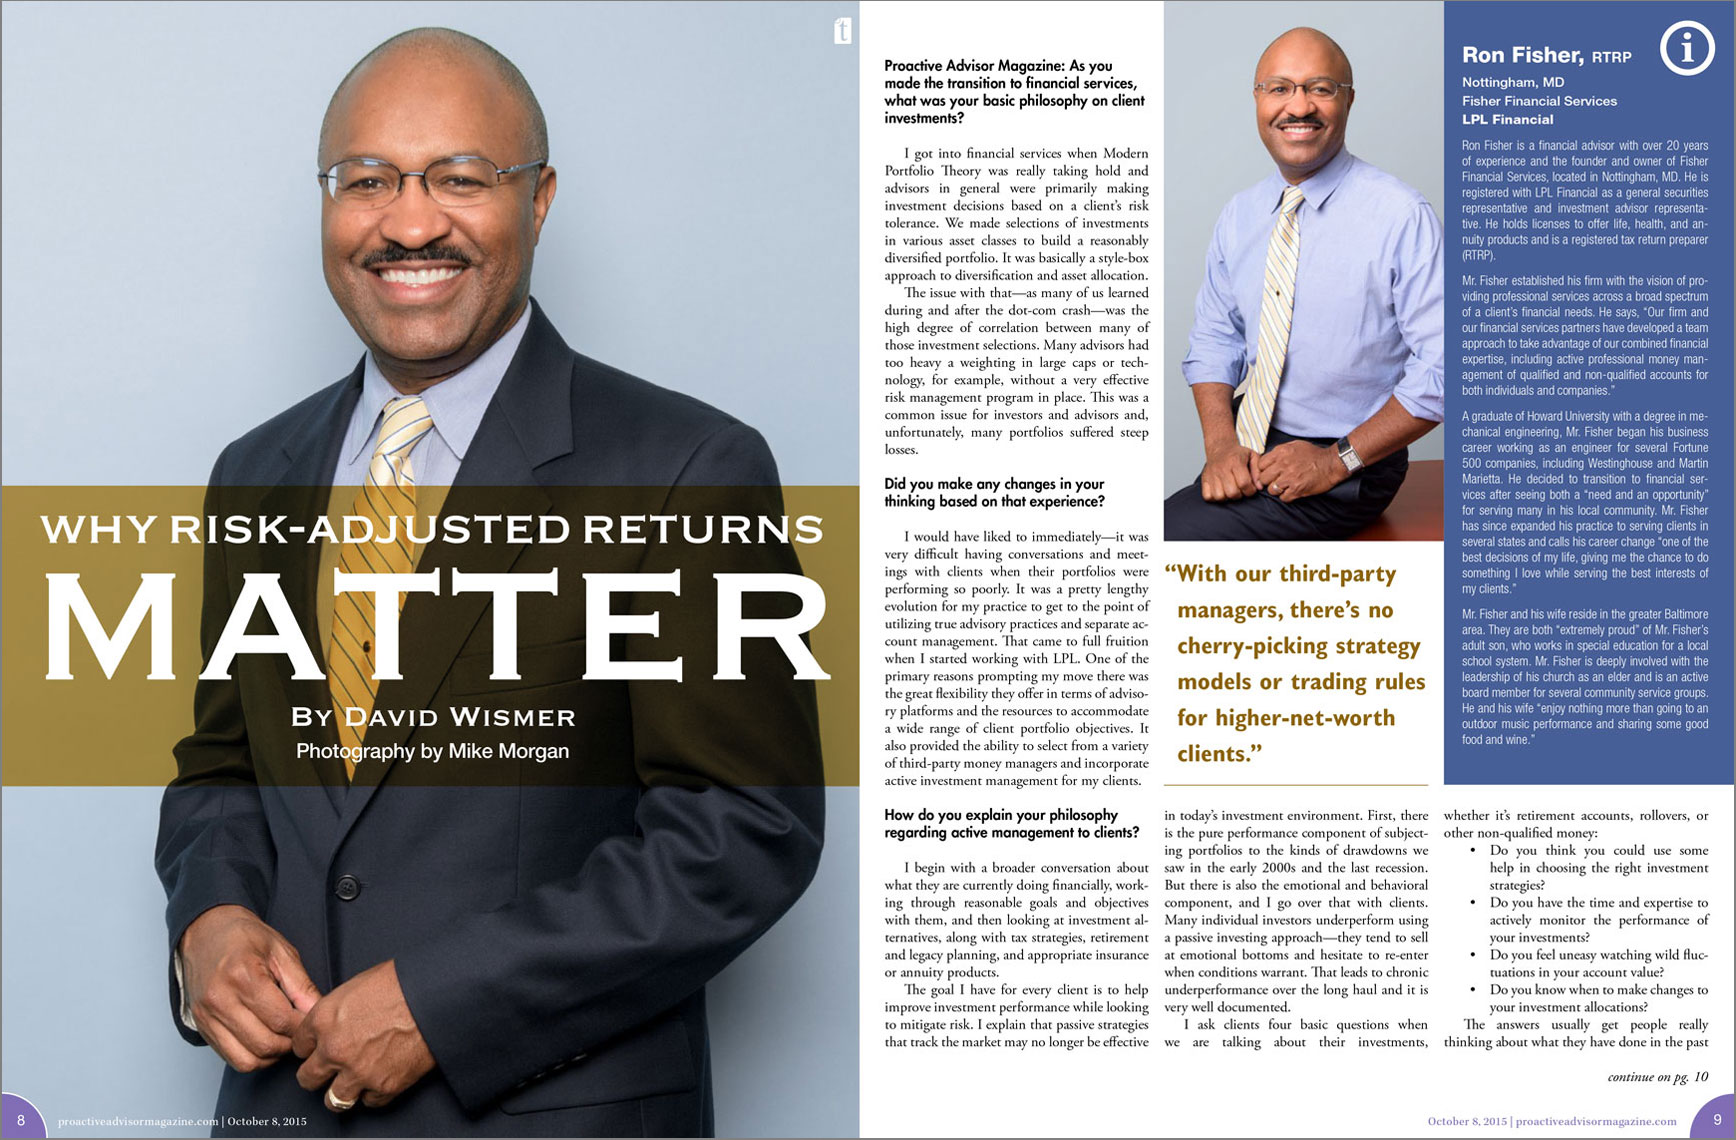 Proactive Advisor Magazine spread featuring Ron Fisher